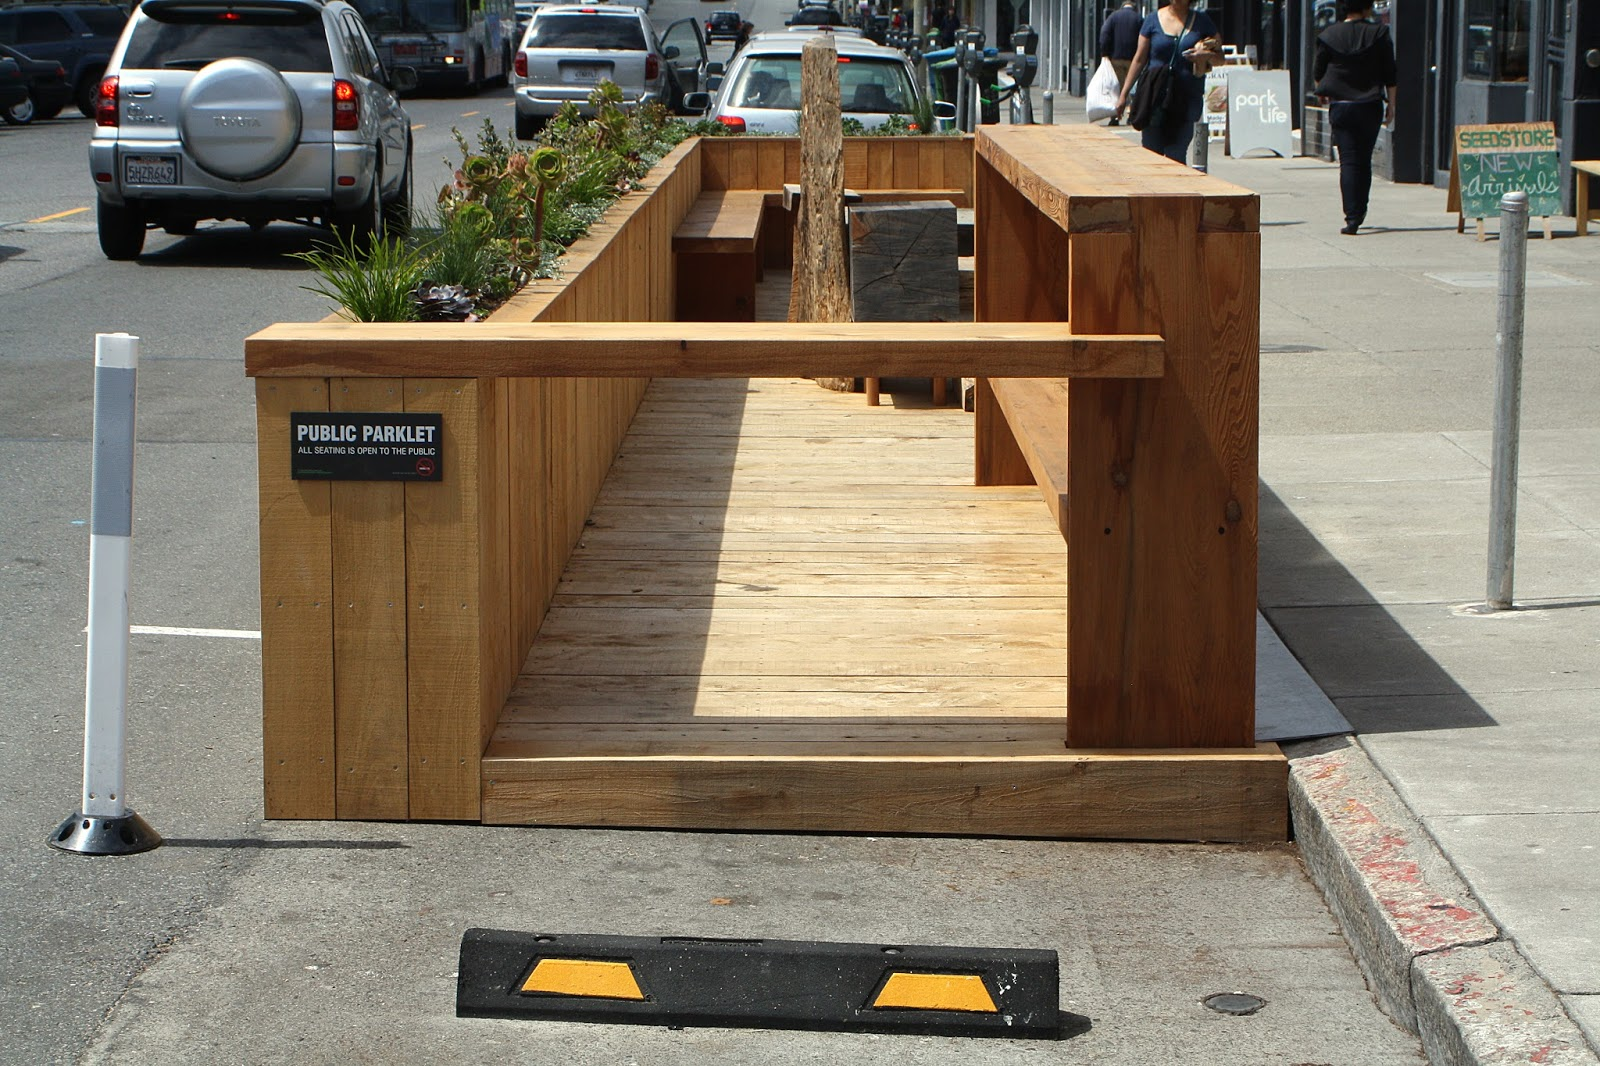 An outdoor parklet on Clement Street, the Inner Richmond's bustling commercial strip. Getting around the neighborhood is a breeze, whether you travel by bicycle, car or Muni. Bus rides provide direct access to the city center.